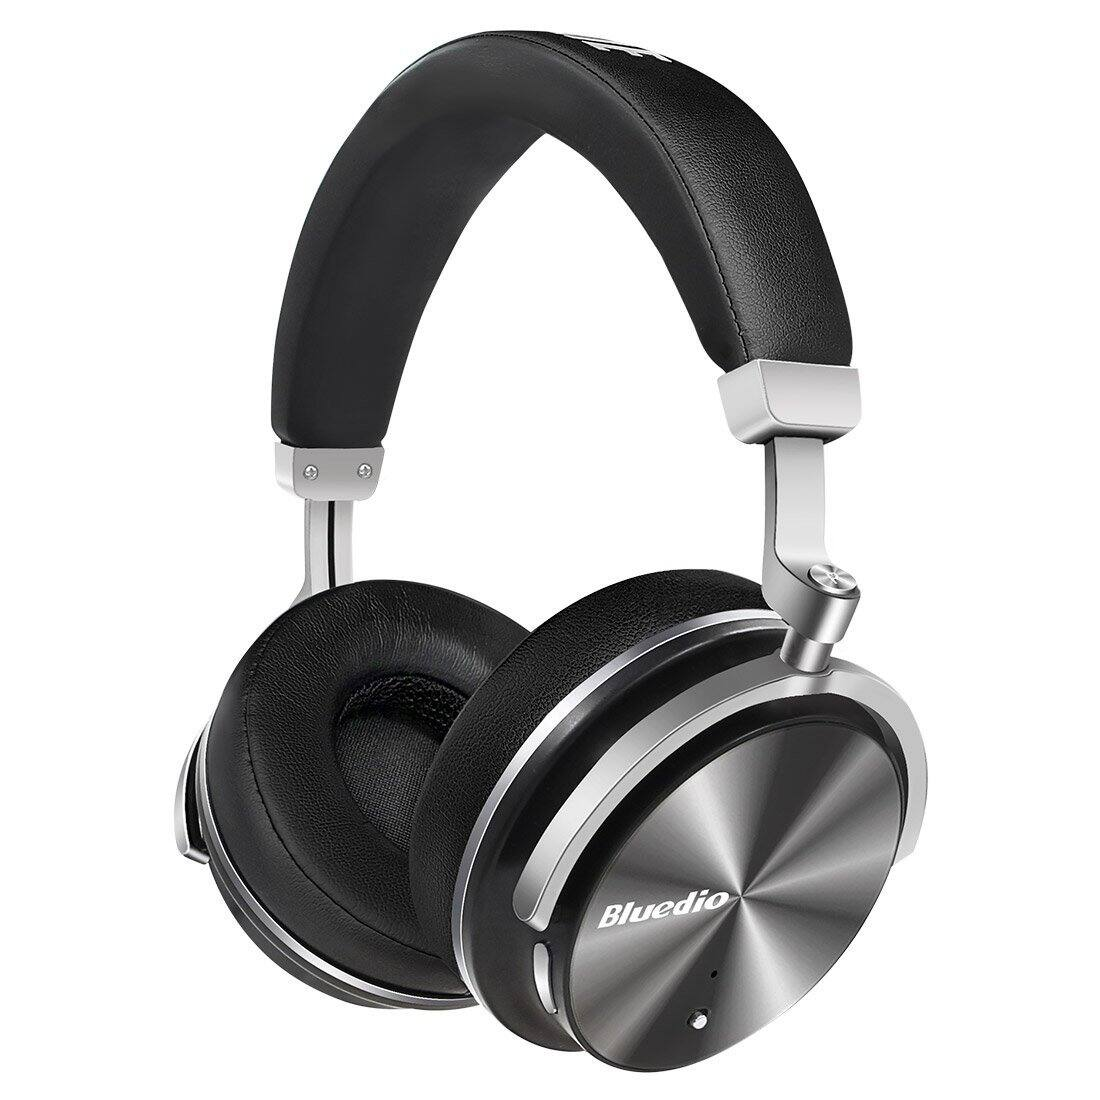 Bluedio T4 (Turbine) Active Noise Cancelling Over-ear Swiveling Wireless Bluetooth Headphones with Mic $29.89